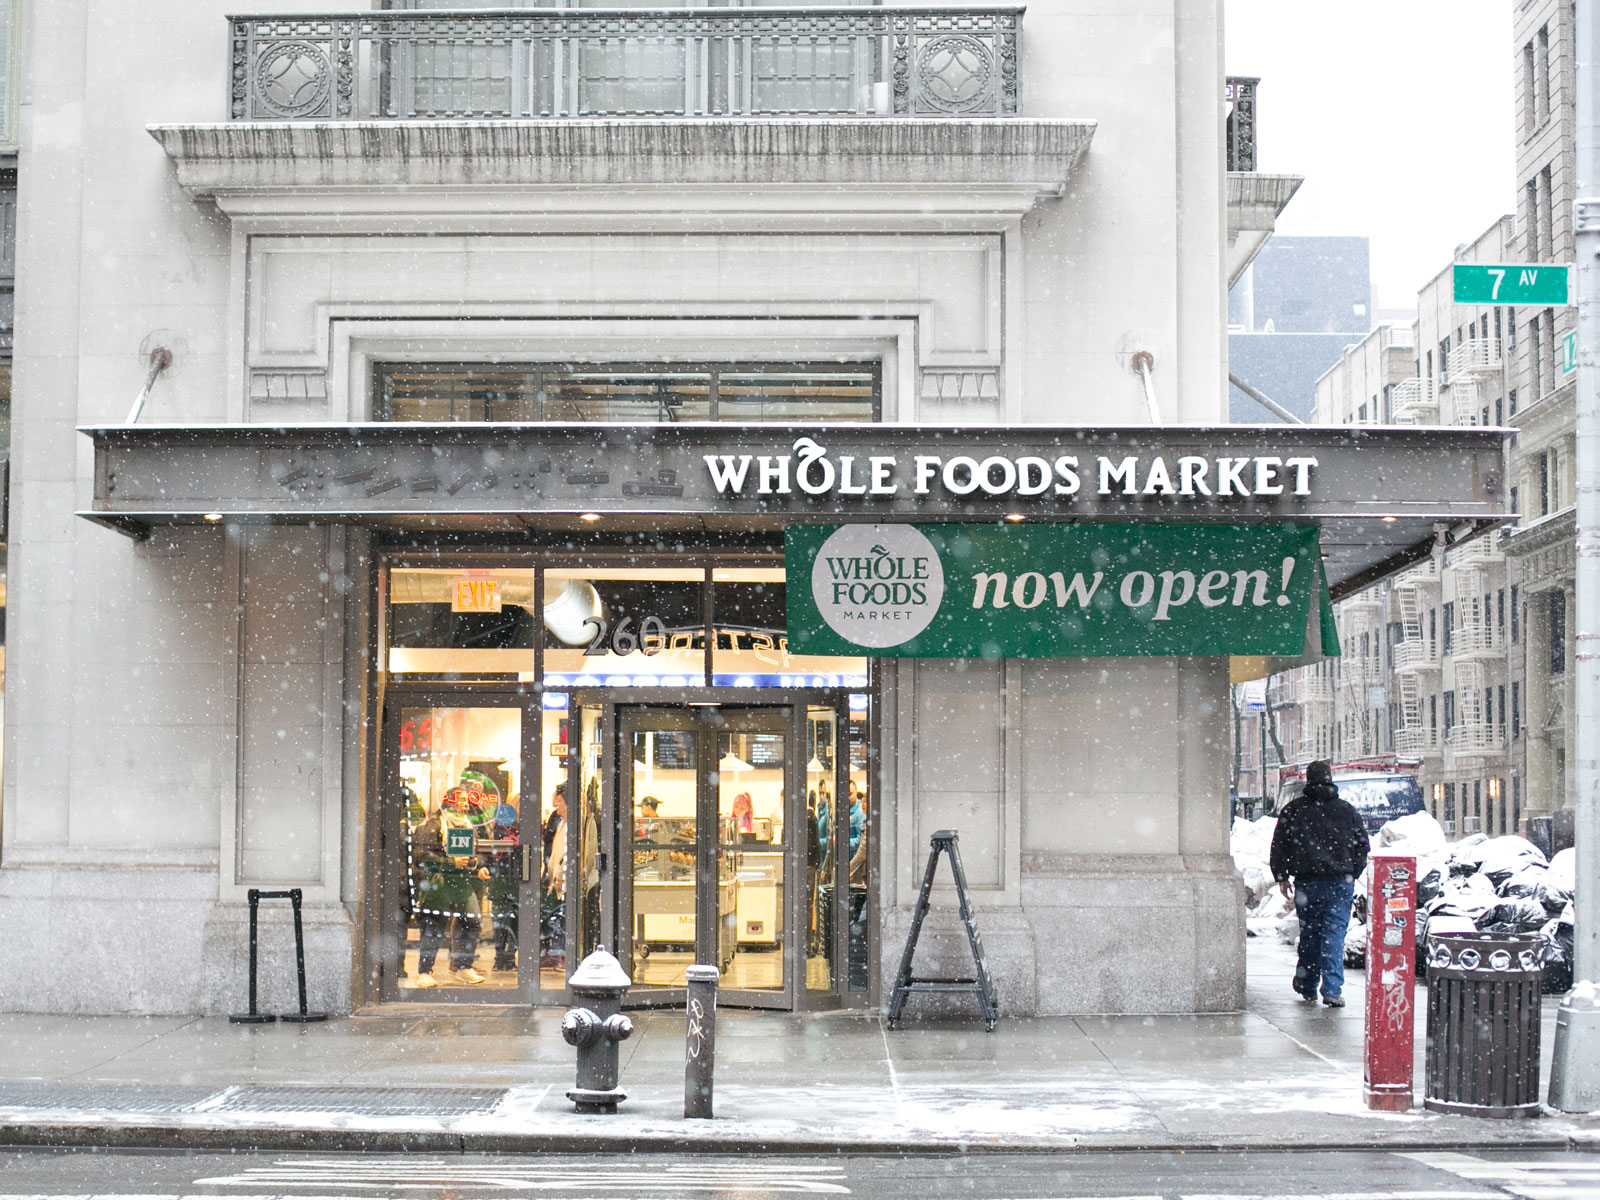 Whole Foods Convenience Store Opens in New York City